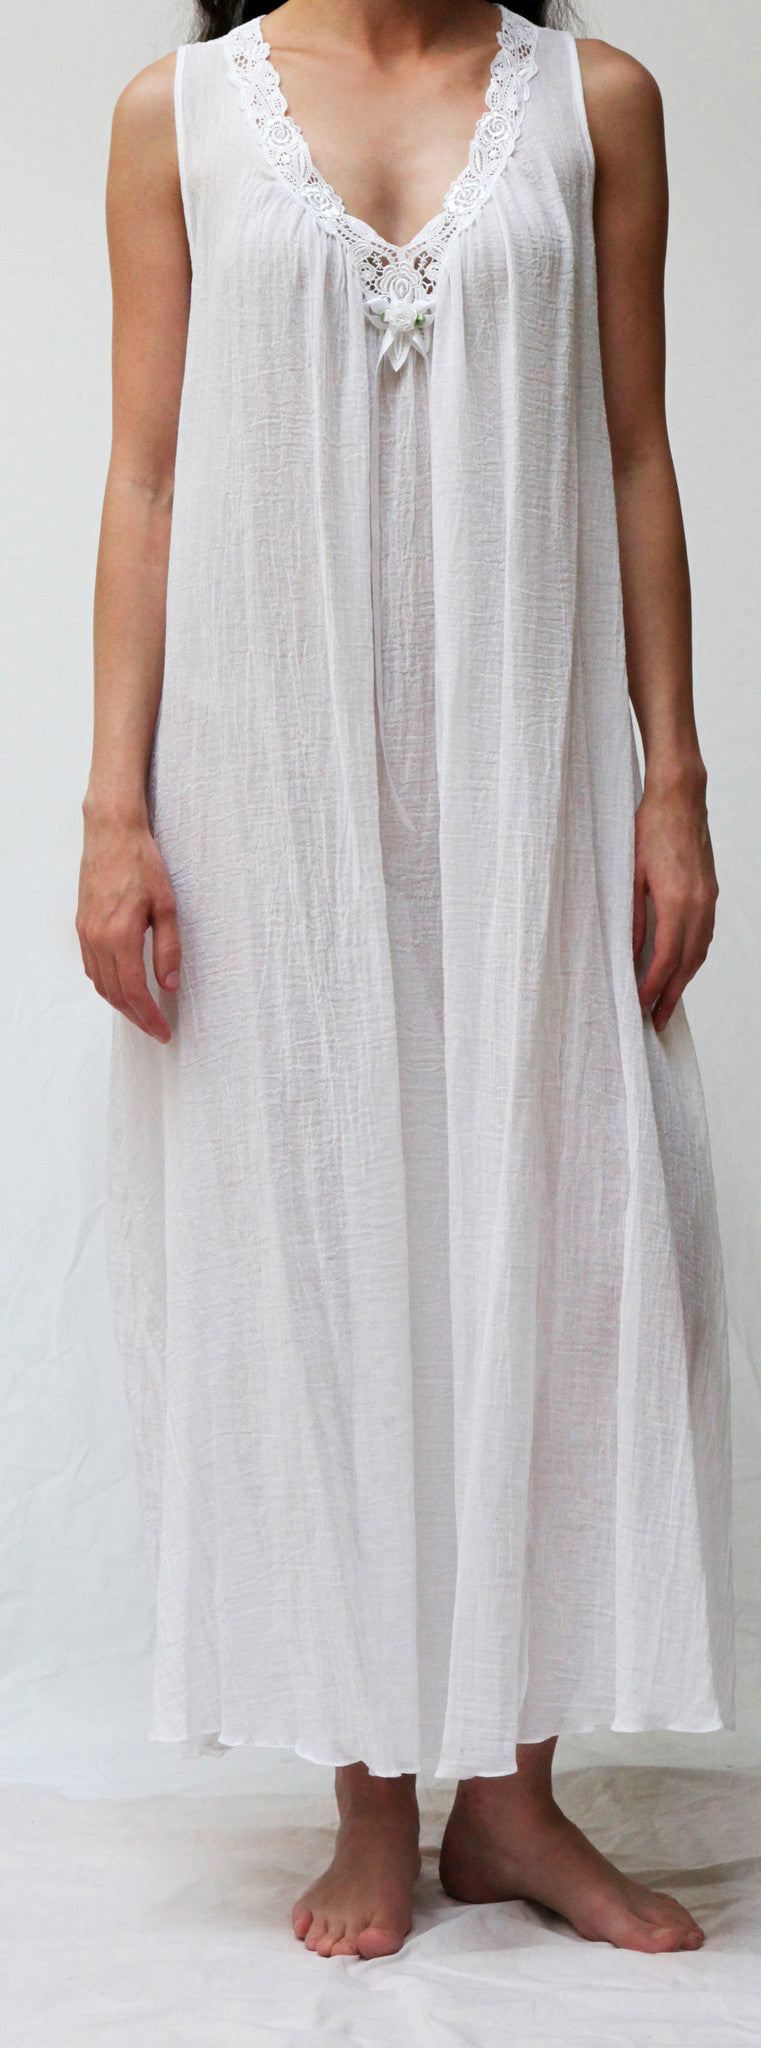 33664 Long sleeveless gown- WHITE GAUZE , AVAILABLE JULY 30TH